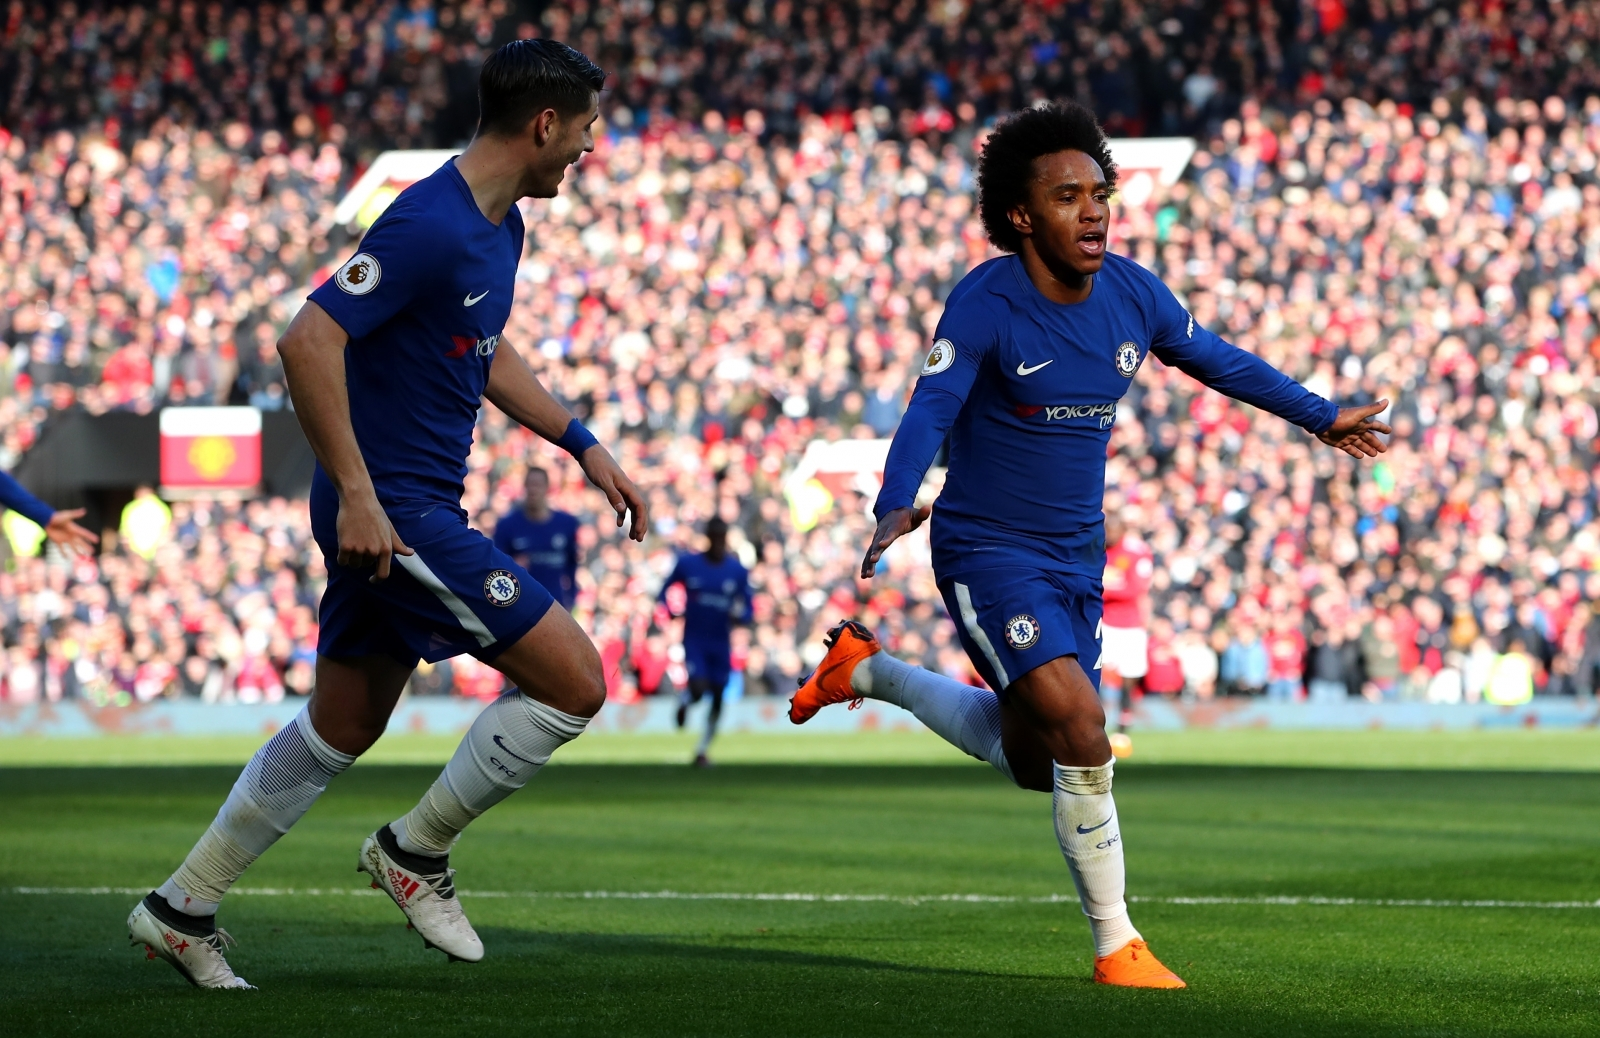 Chelsea star Willian reveals talks with Manchester United in shock admission